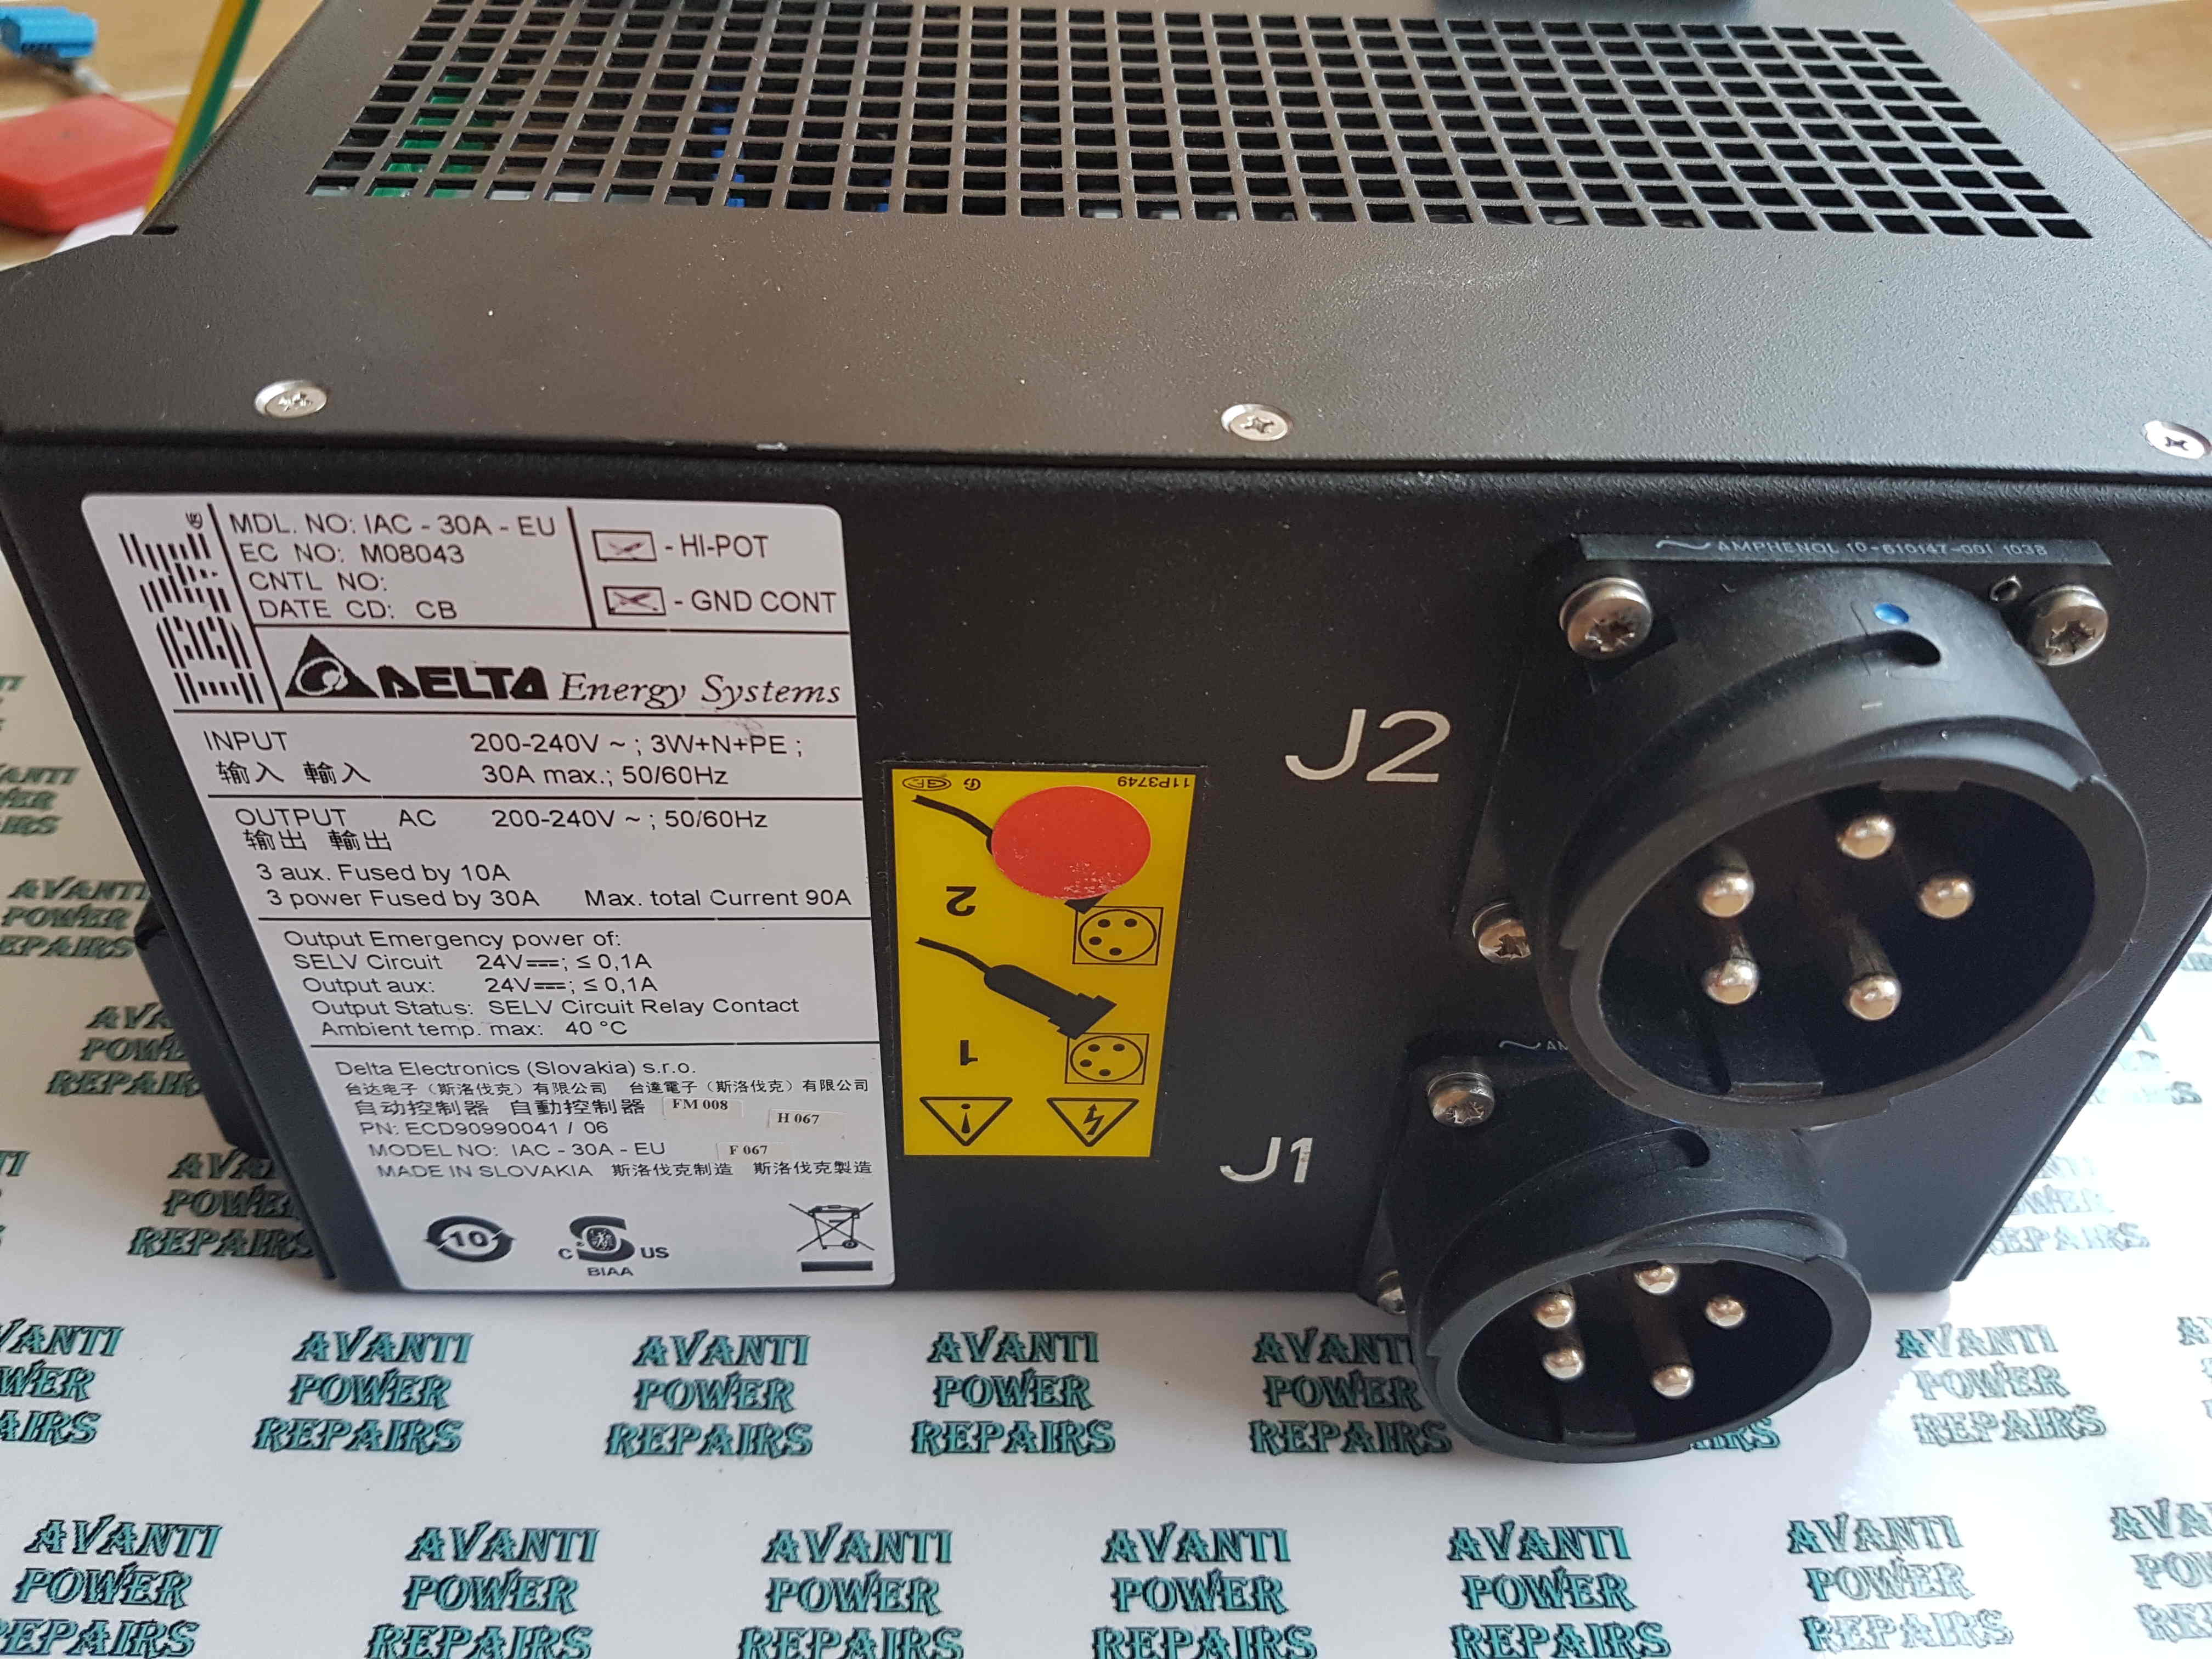 Dorable Atx Power Supply Repair Guide Ensign - Everything You Need ...